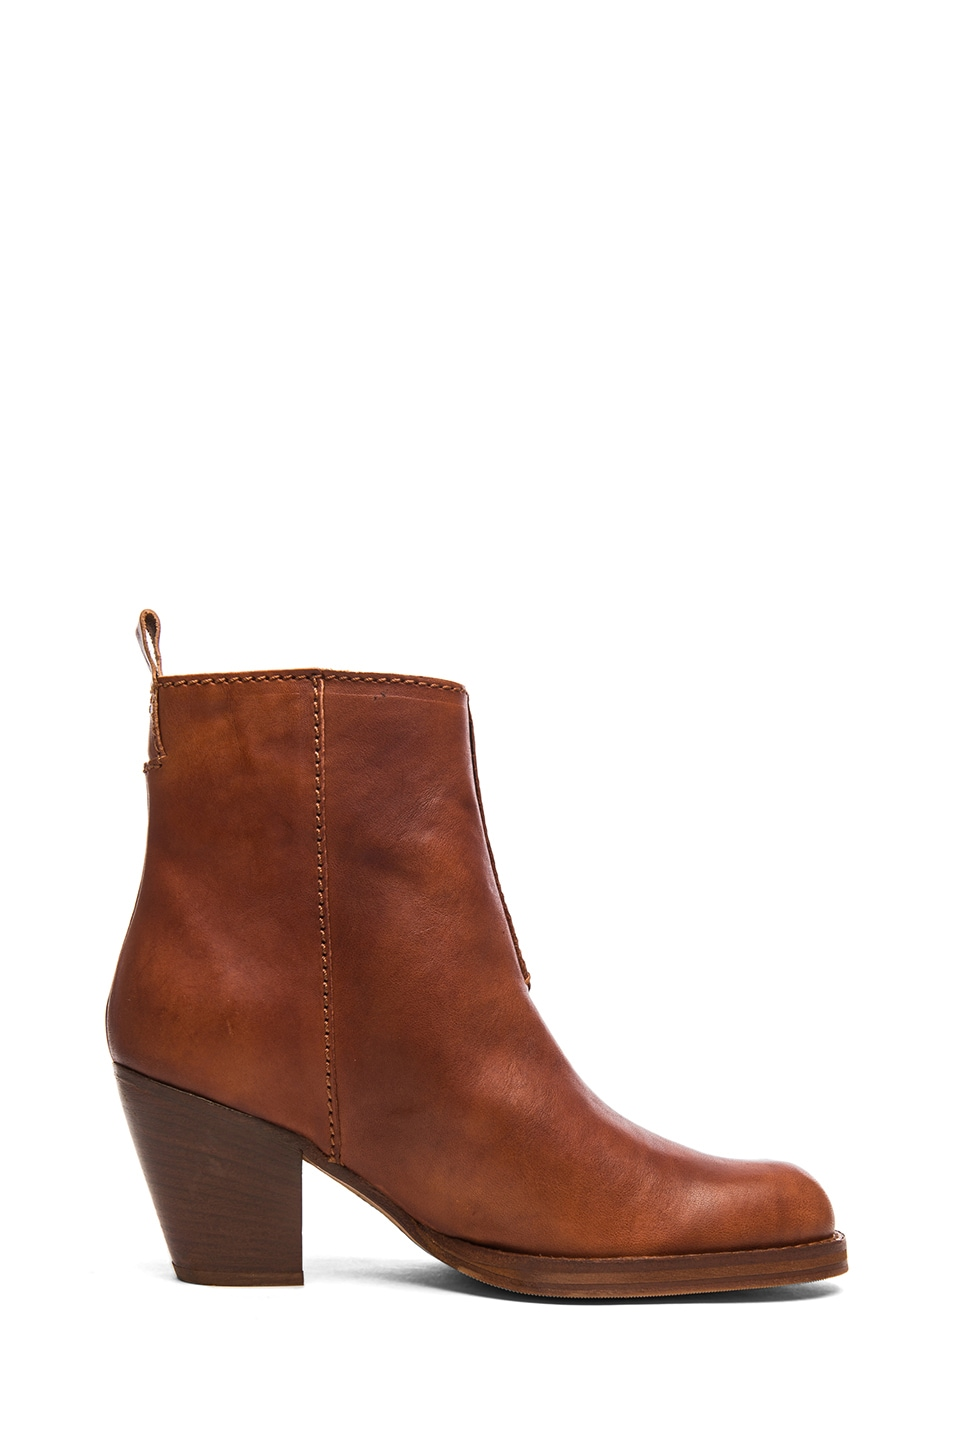 Image 5 of Acne Studios Pistol Leather Booties in Chestnut